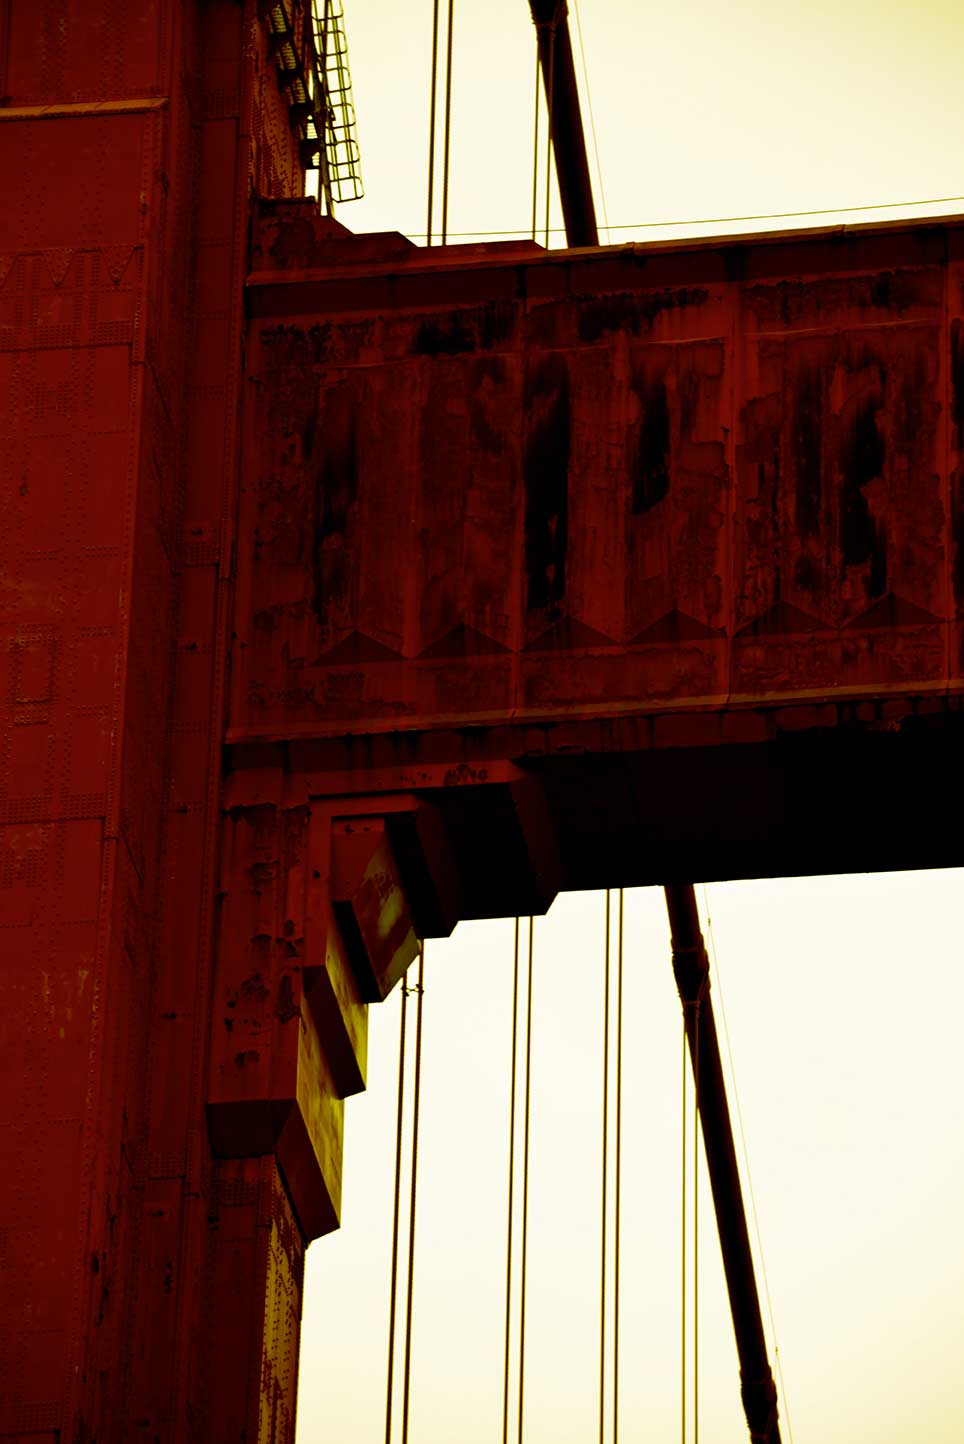 bridge, red, California, golden gate, tower, abstract, shadow, art deco